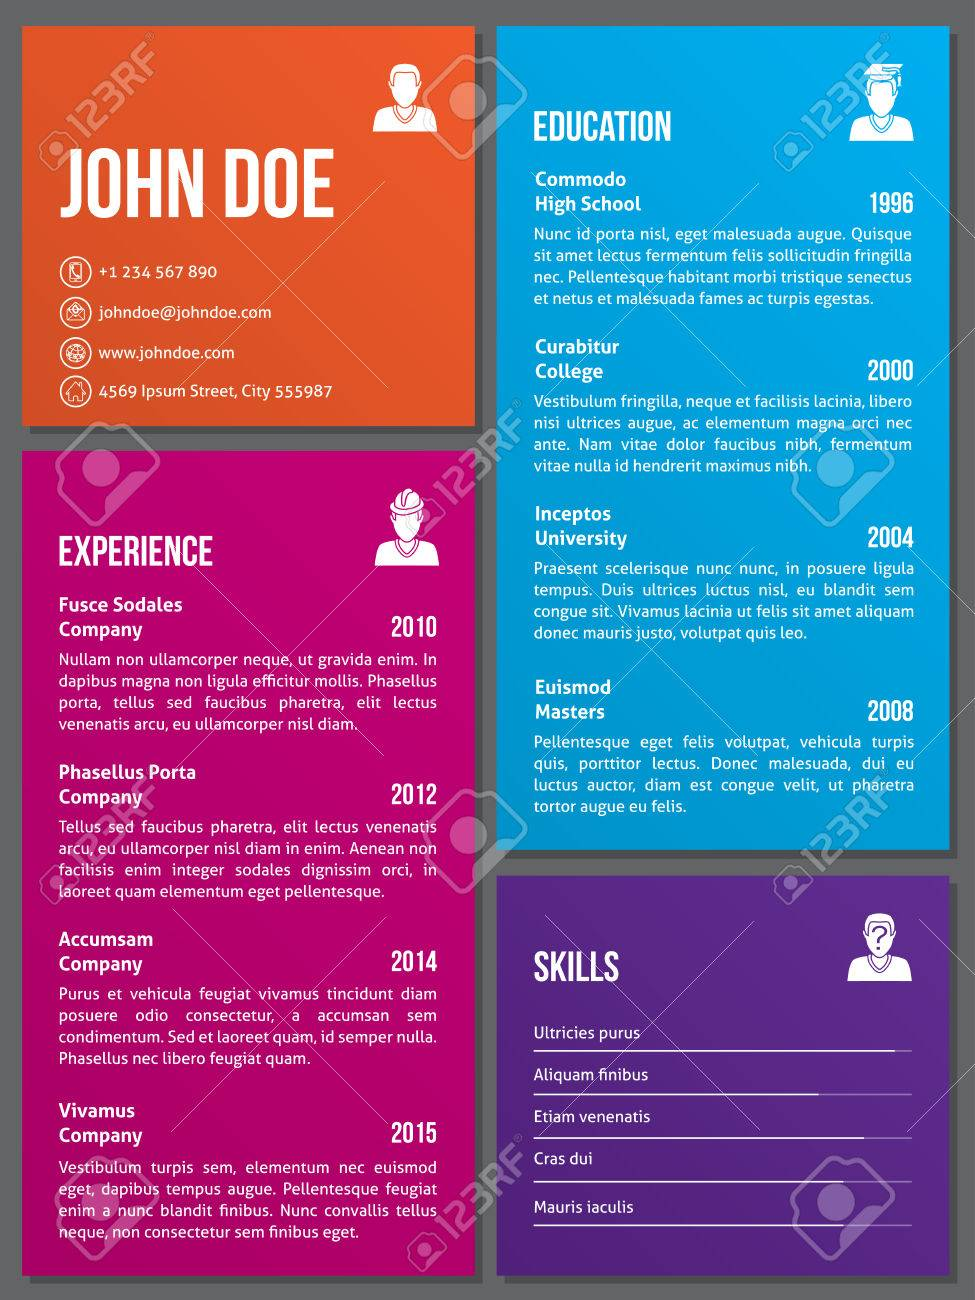 metro design curriculum vitae cv resume template royalty metro design curriculum vitae cv resume template stock vector 45140826